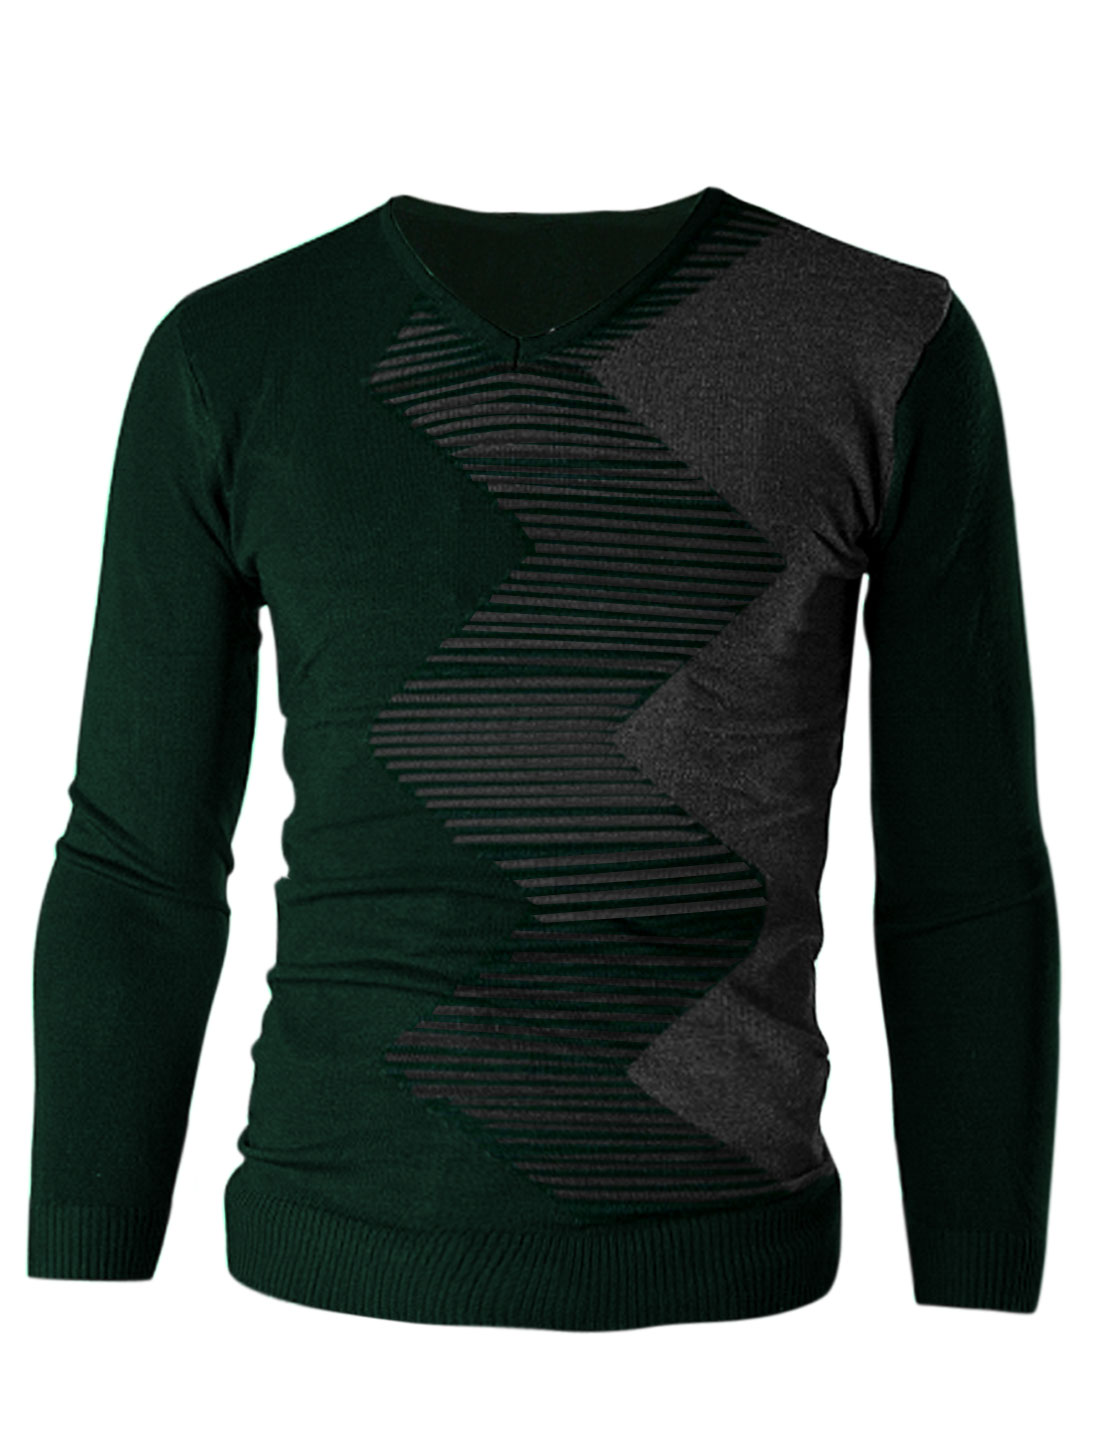 Men Color Block Stripes Zig-Zag Pattern Casual Slim Knit Shirt Green M